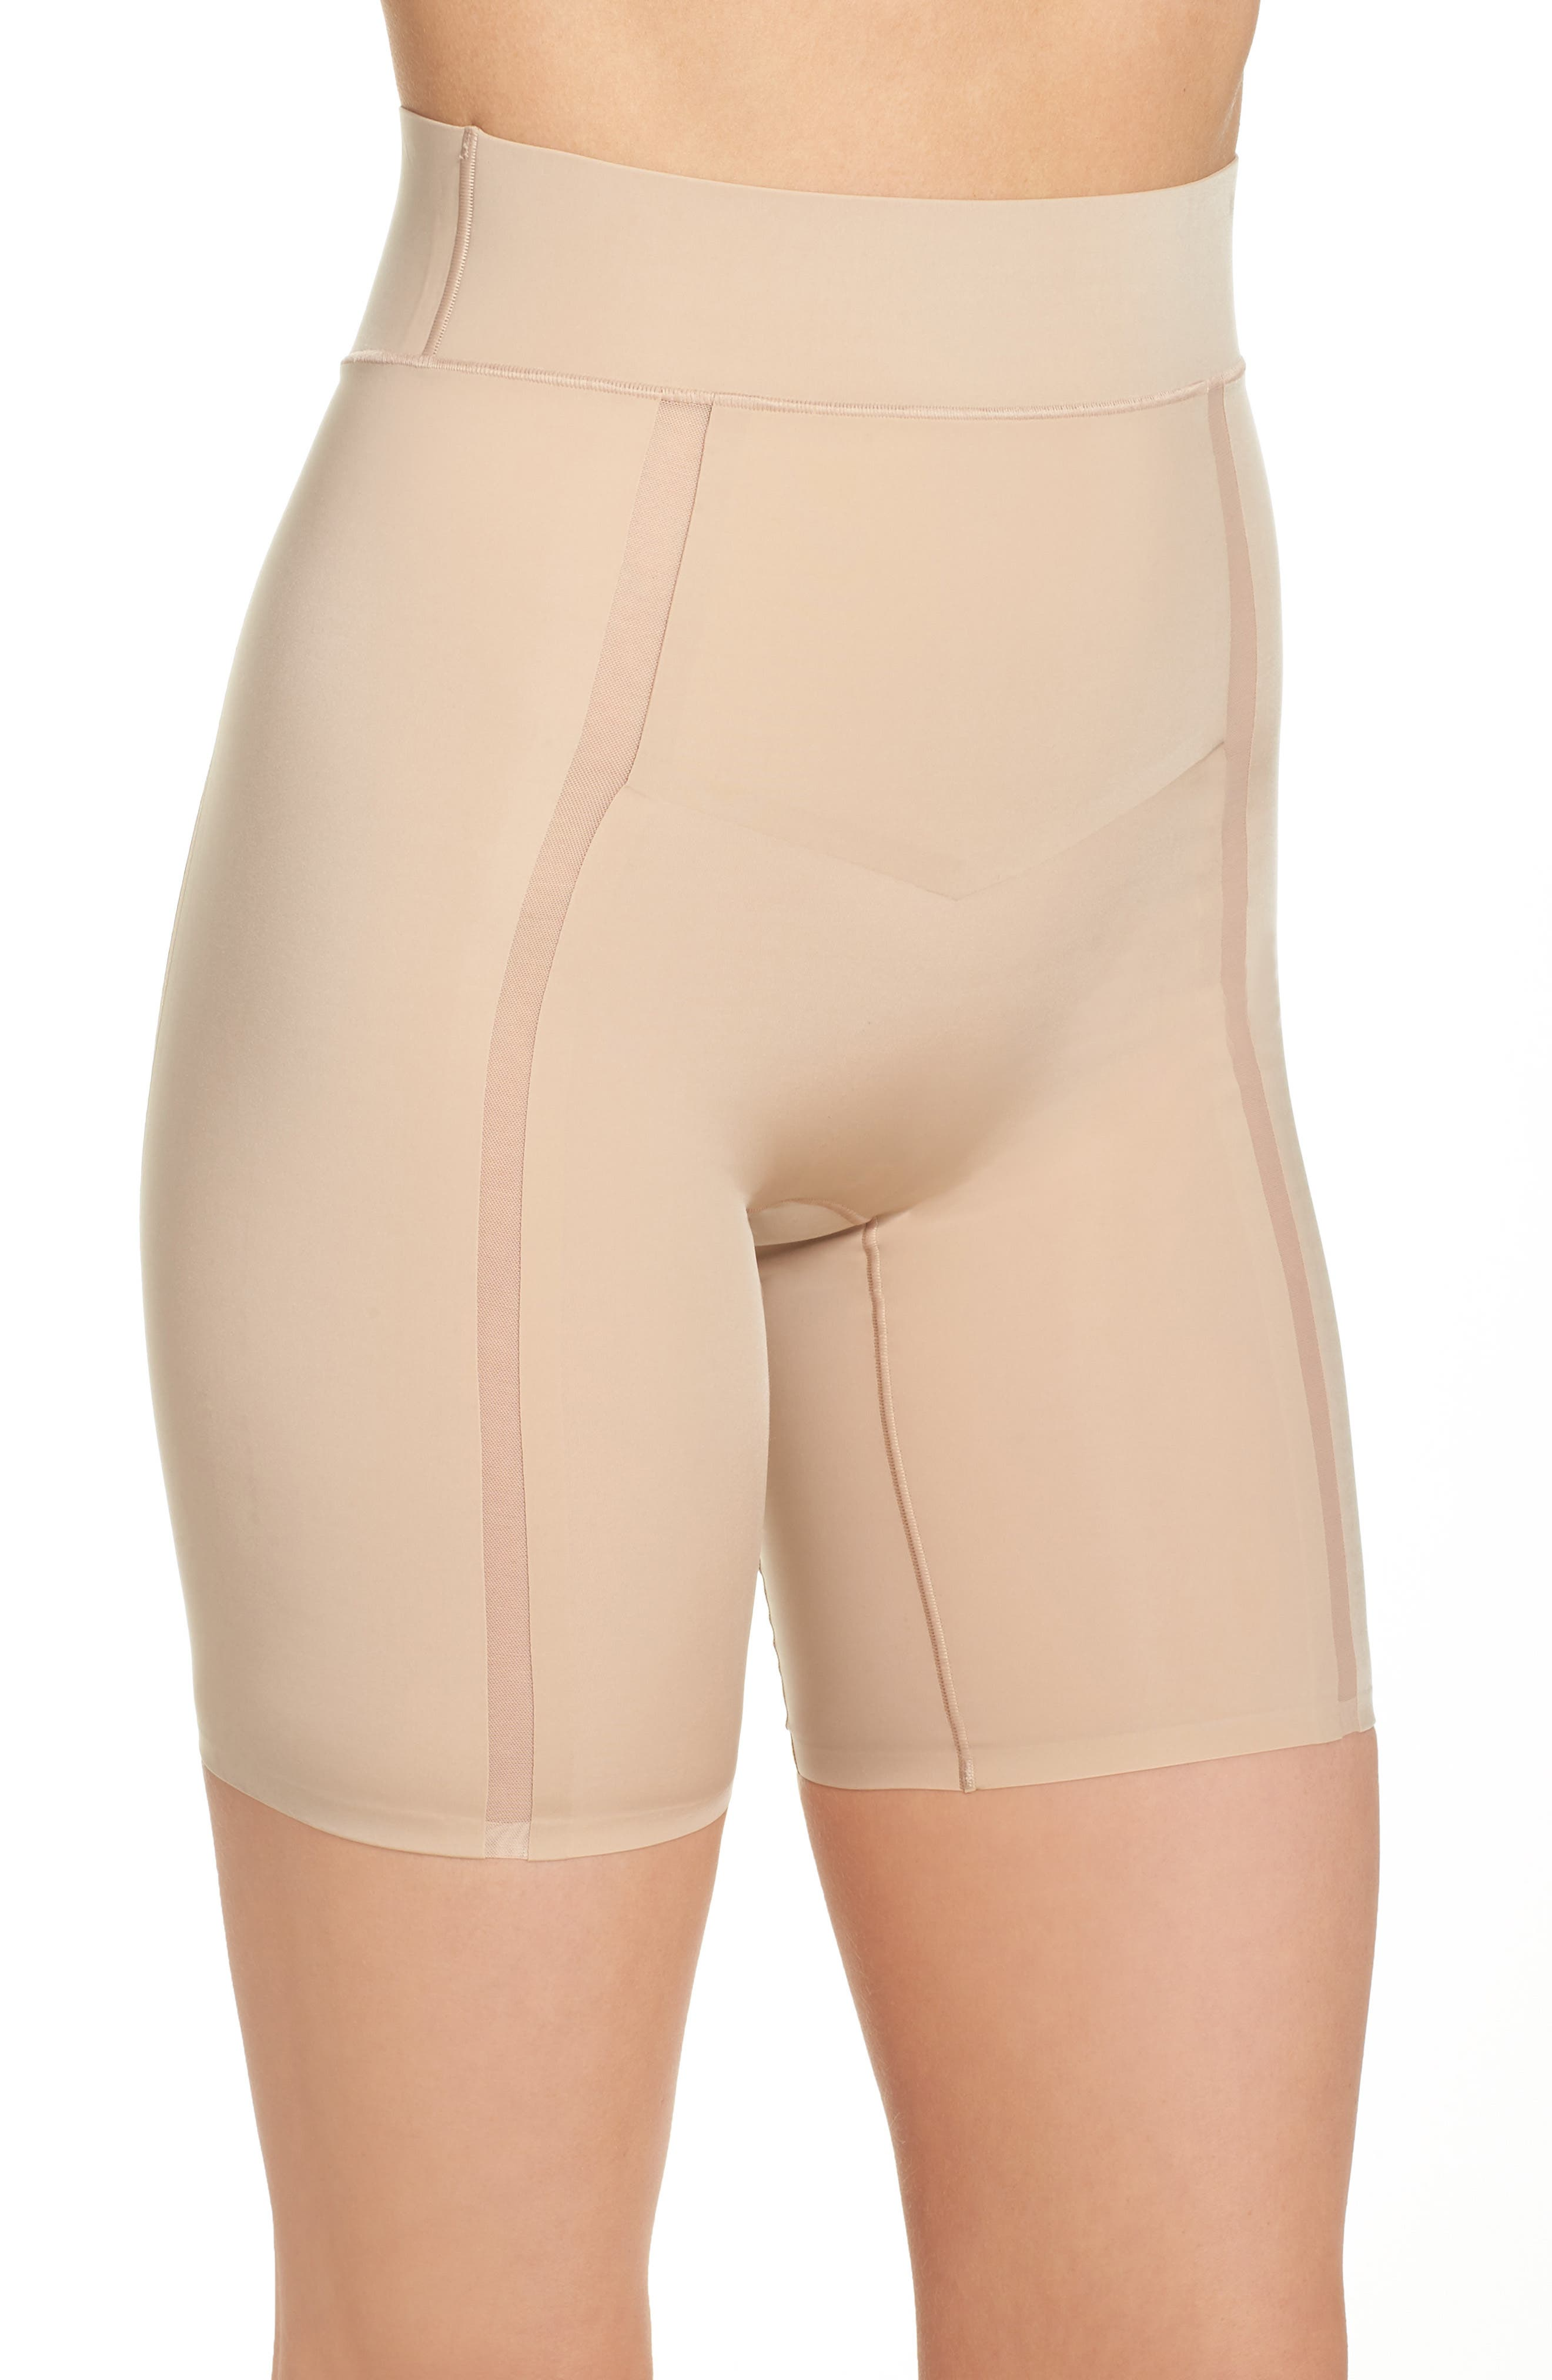 Sculpted Shapewear Thigh Shaper,                             Alternate thumbnail 3, color,                             250